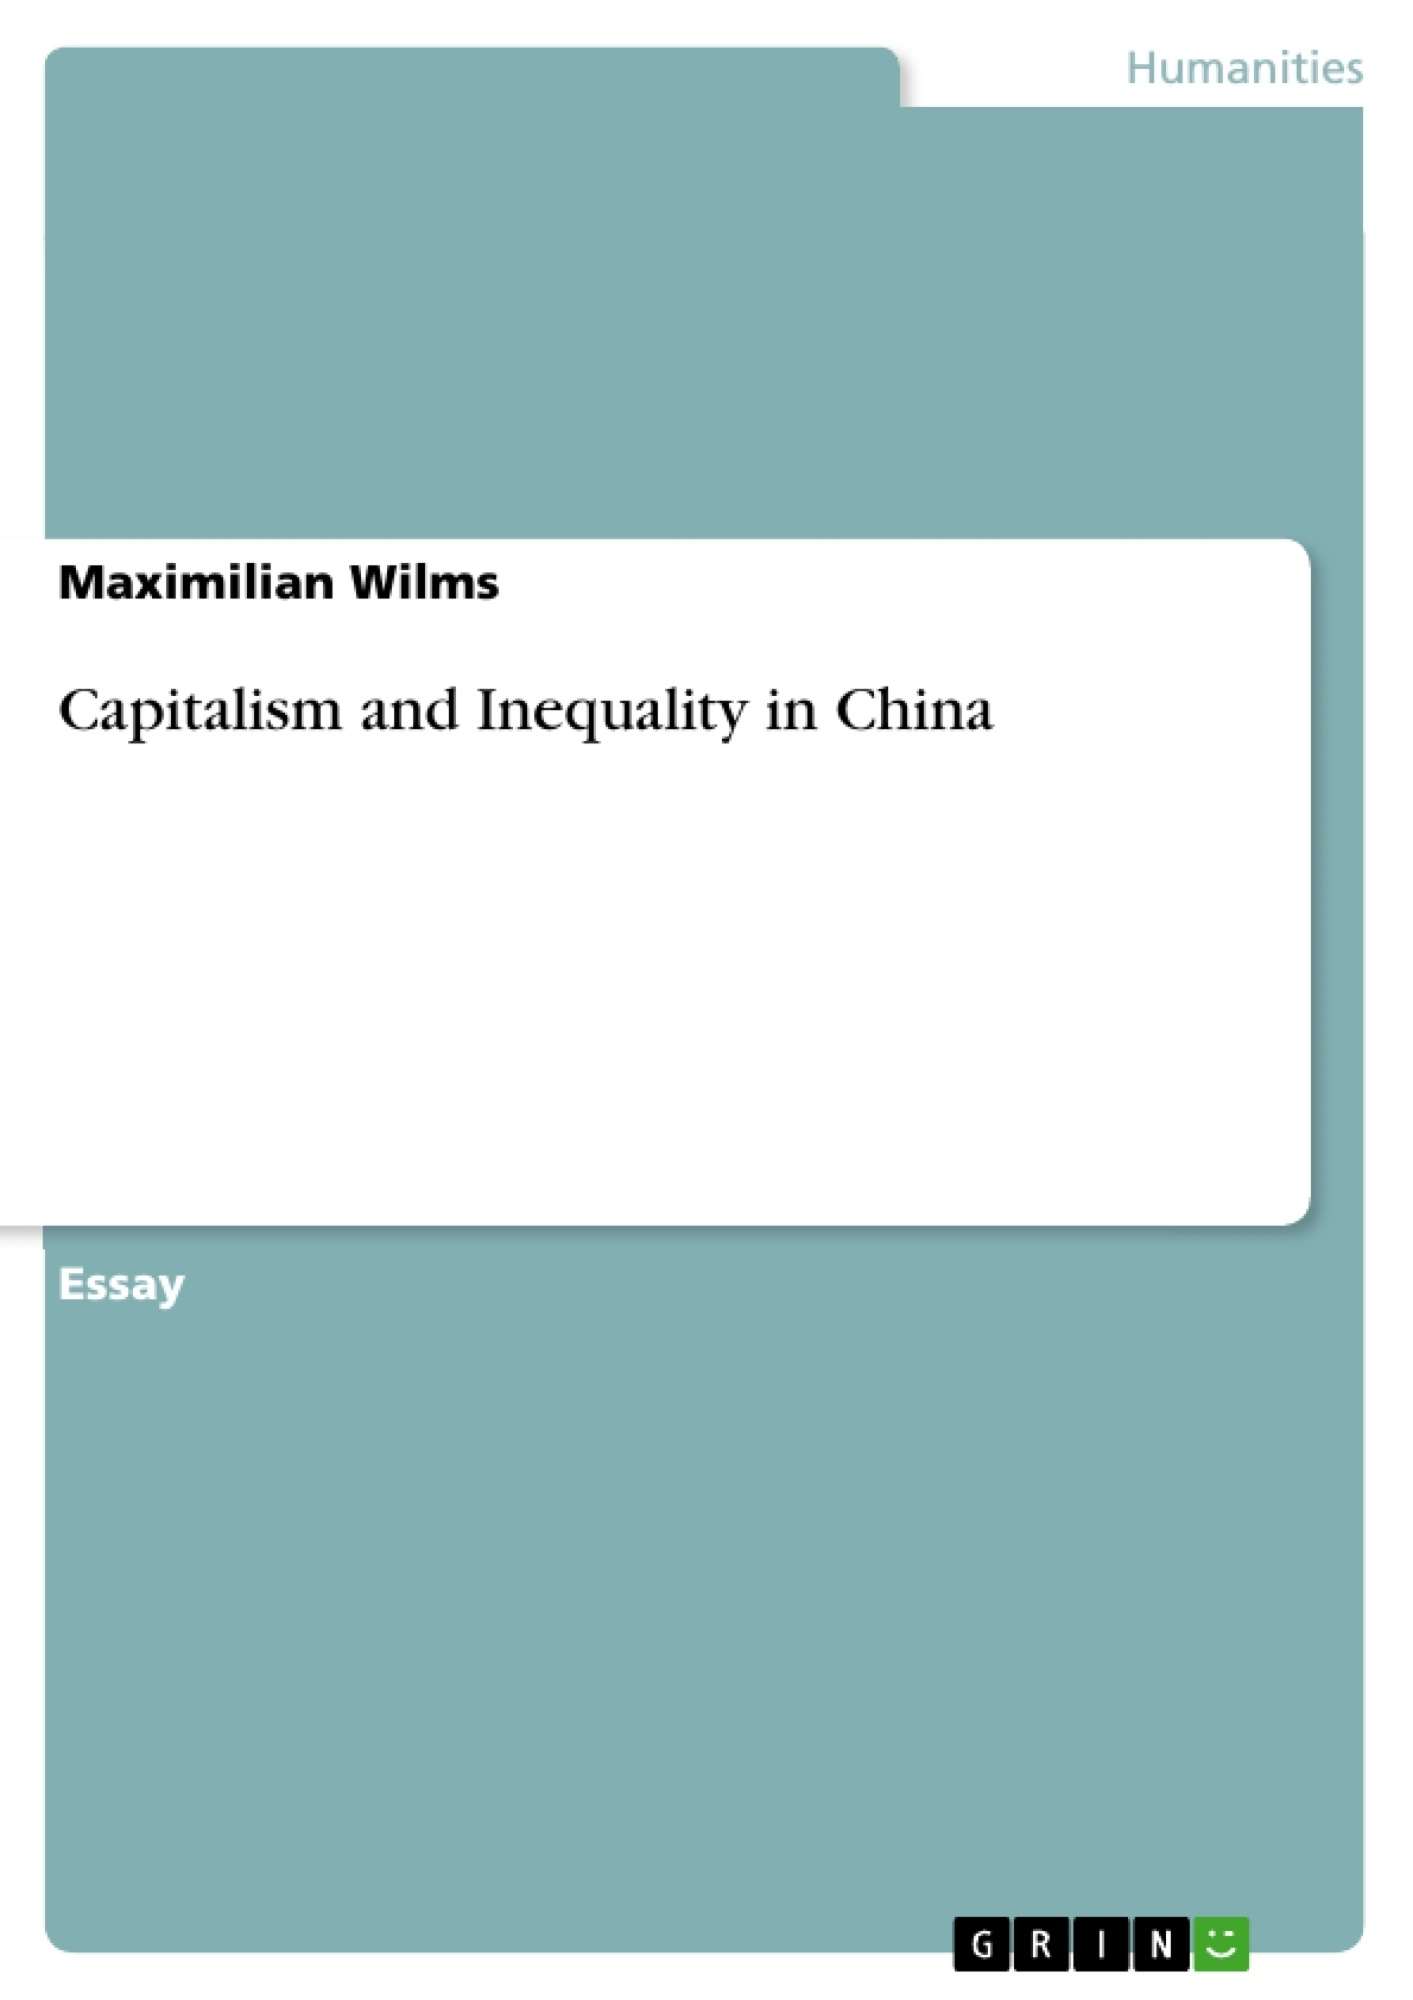 Title: Capitalism and Inequality in China